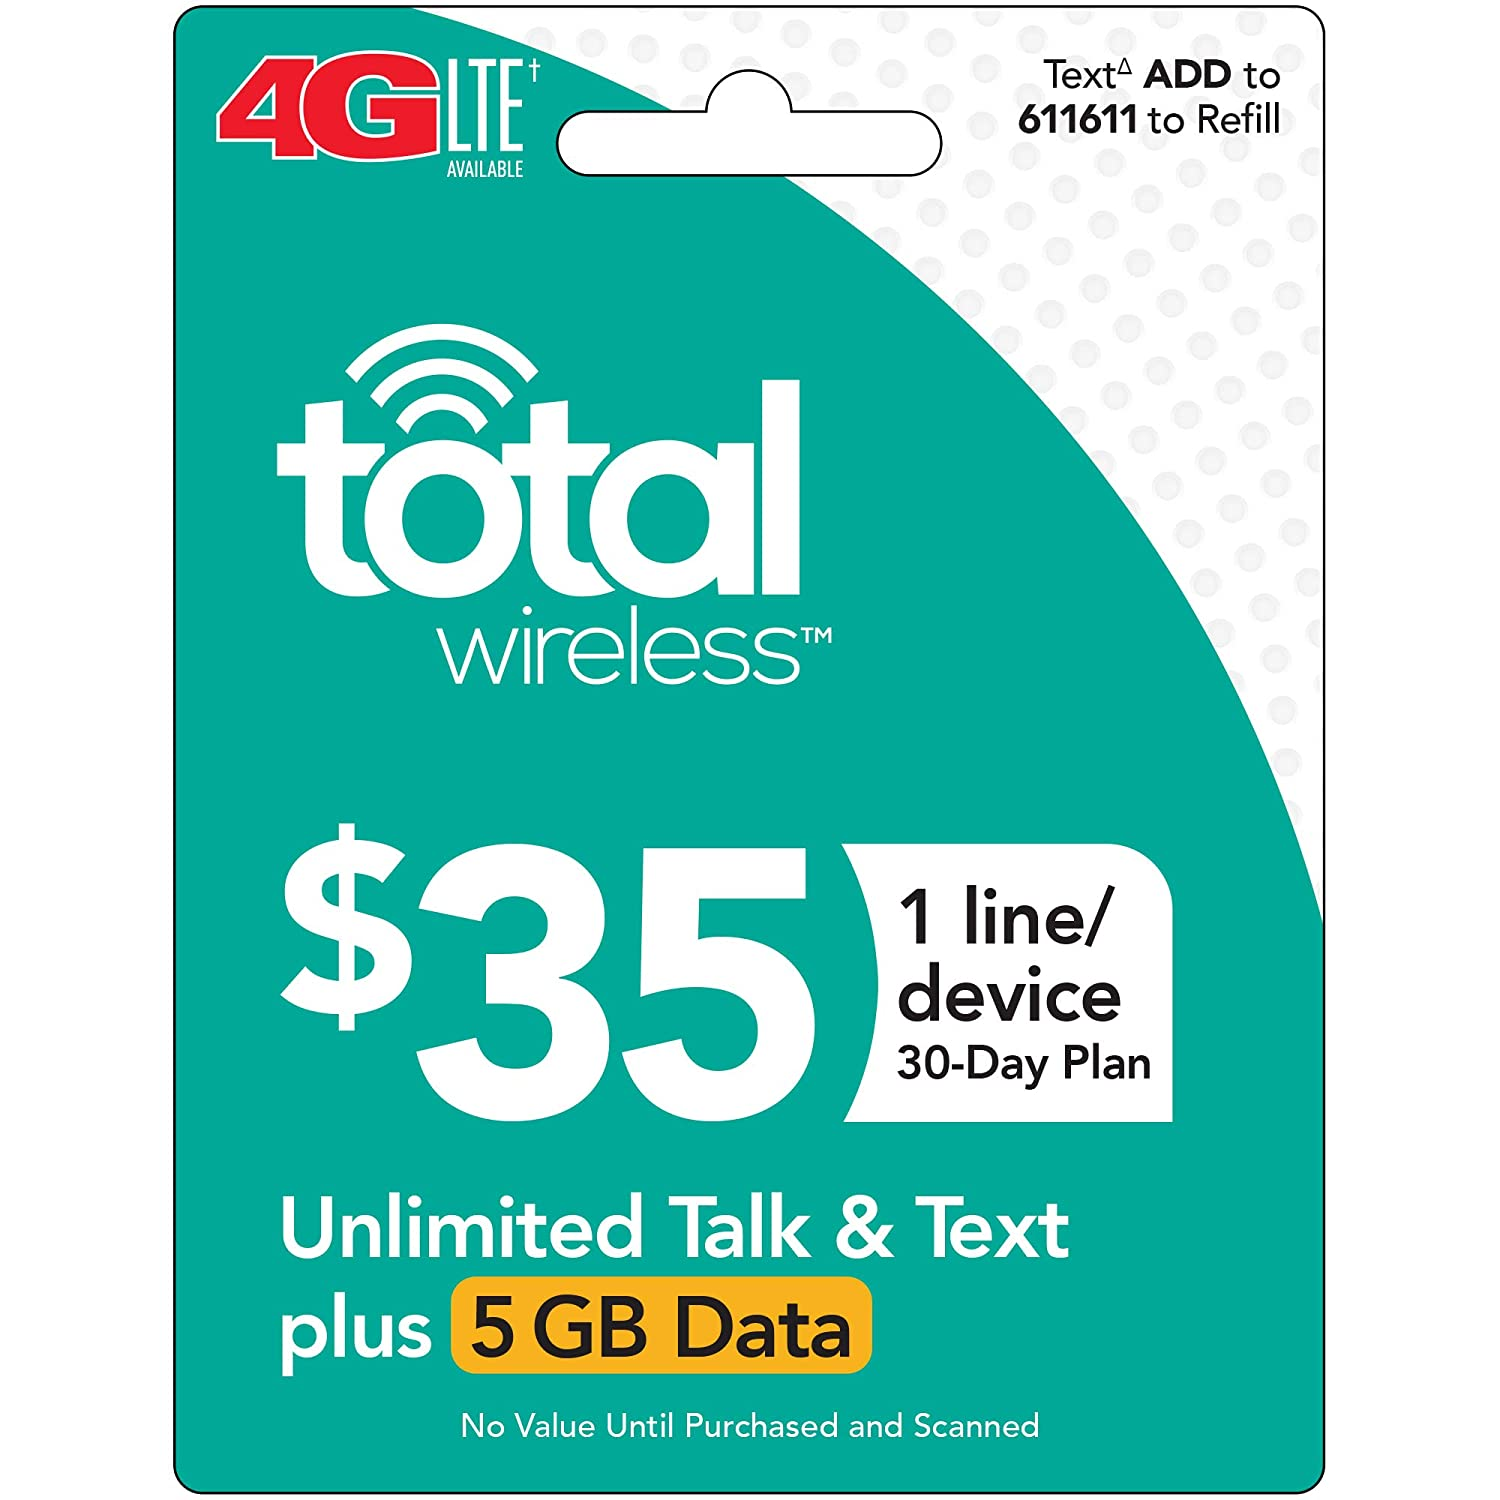 Total Wireless Single Line Plan - Unlimited Talk, Text and 5GB Data